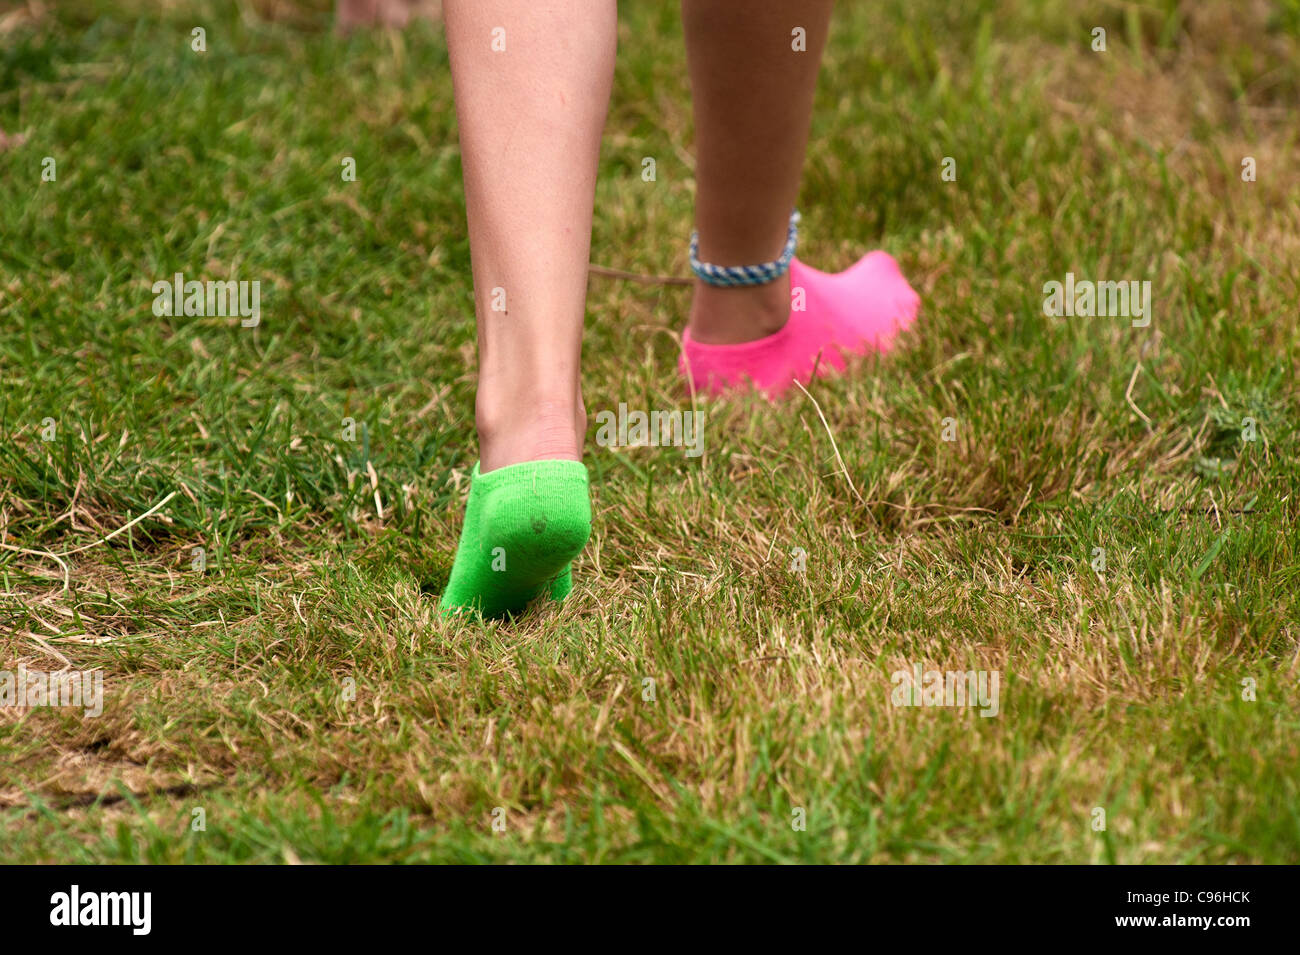 Ankle Socks Stock Photos Ankle Socks Stock Images Alamy